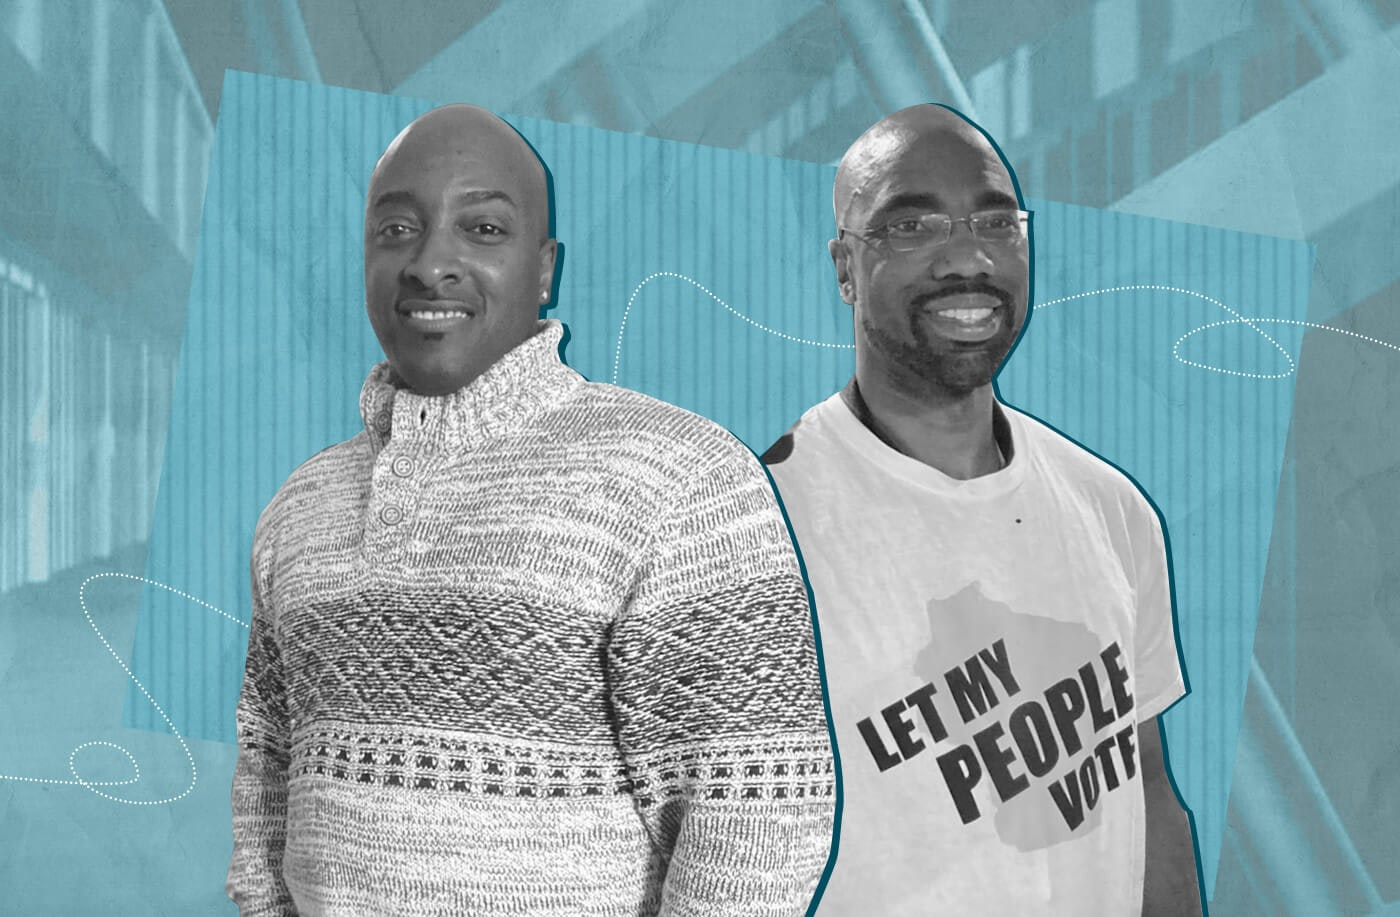 Garland Hampton, left, and Dominee Meek spent more than 25 years behind bars serving live prison sentences they received at age 15. They were released on parole, but thanks to a state law change, teens receiving the same sentence just a few years later would not have been eligible for a parole. Meek and Hampton are advocating for other teens to have the same shot at redemption. (Graphic by Morgaine Ford-Workman)